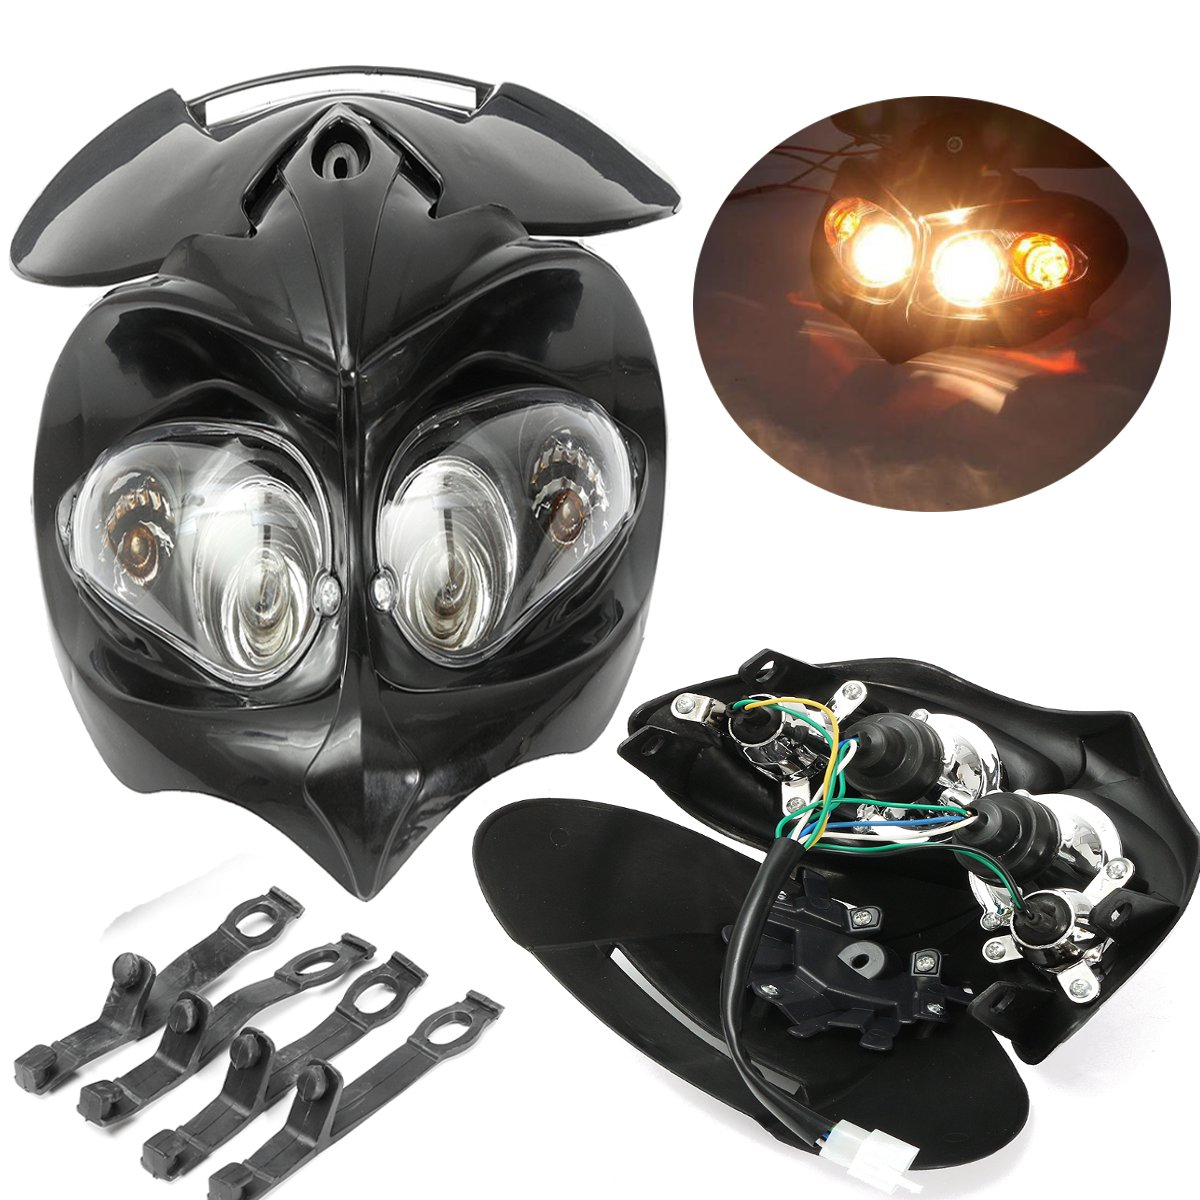 12V Headlight Fairing Motorcycle Dual Sport Motocross Street Fighter Dirt Bike